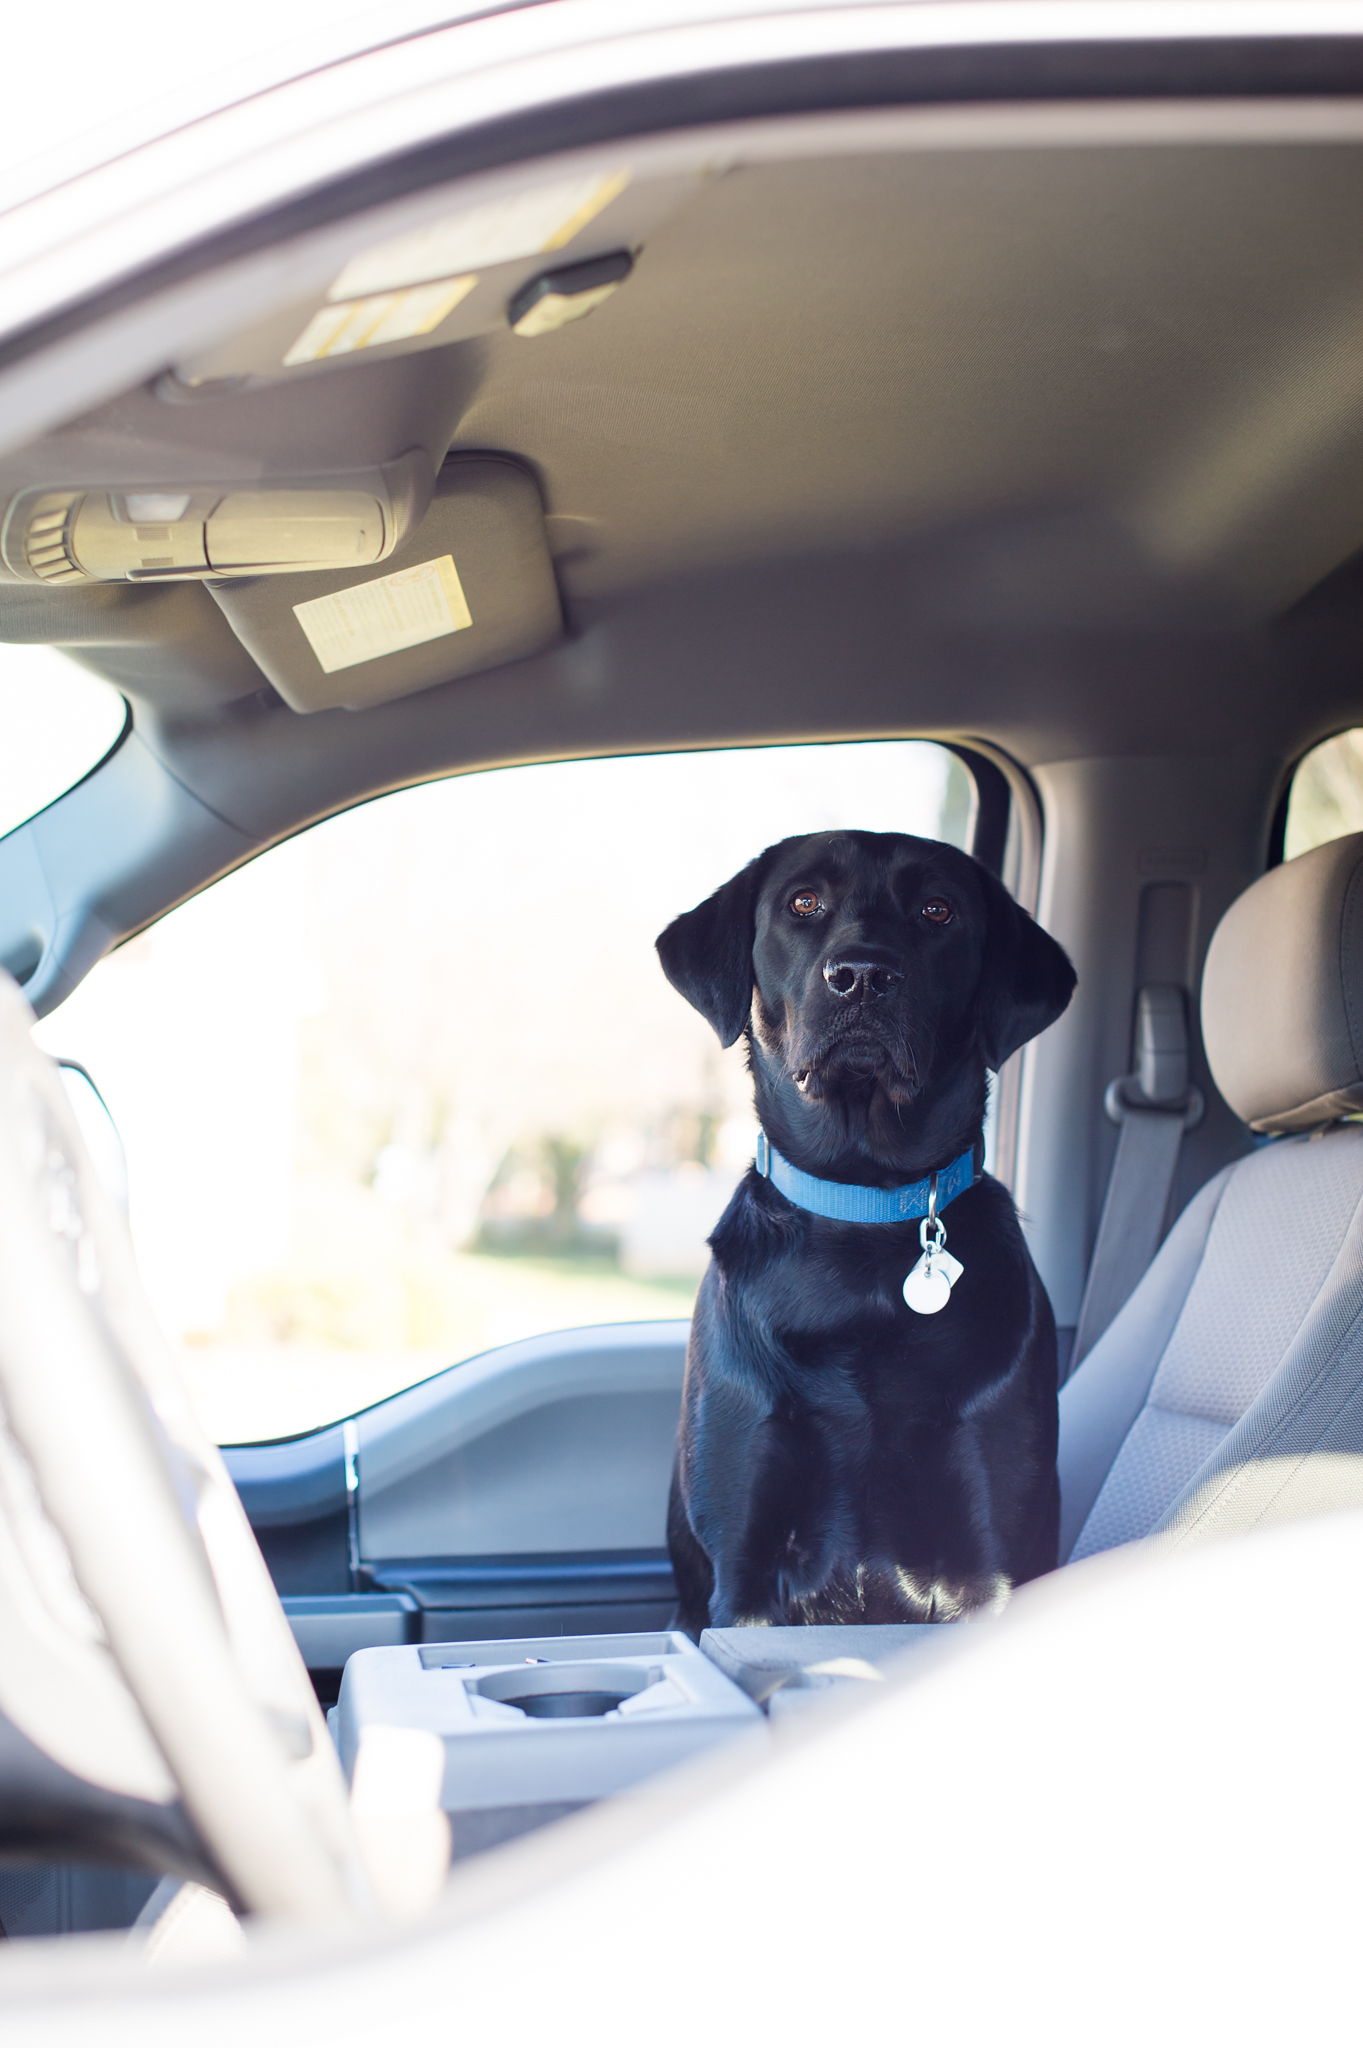 A black lab dog sits in the front seat of a truck.